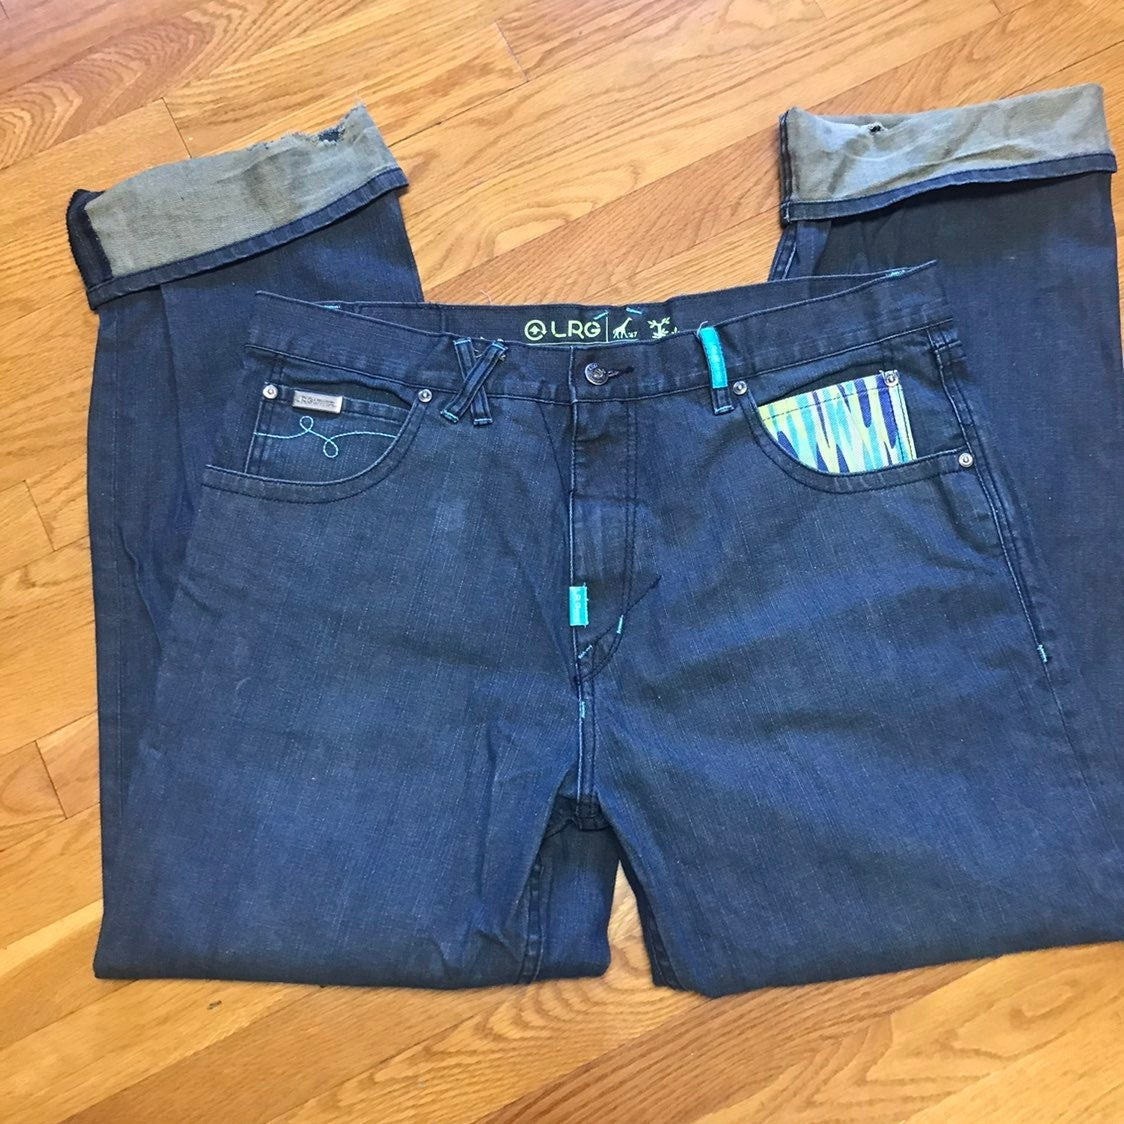 LRG oversized baggy jeans 38